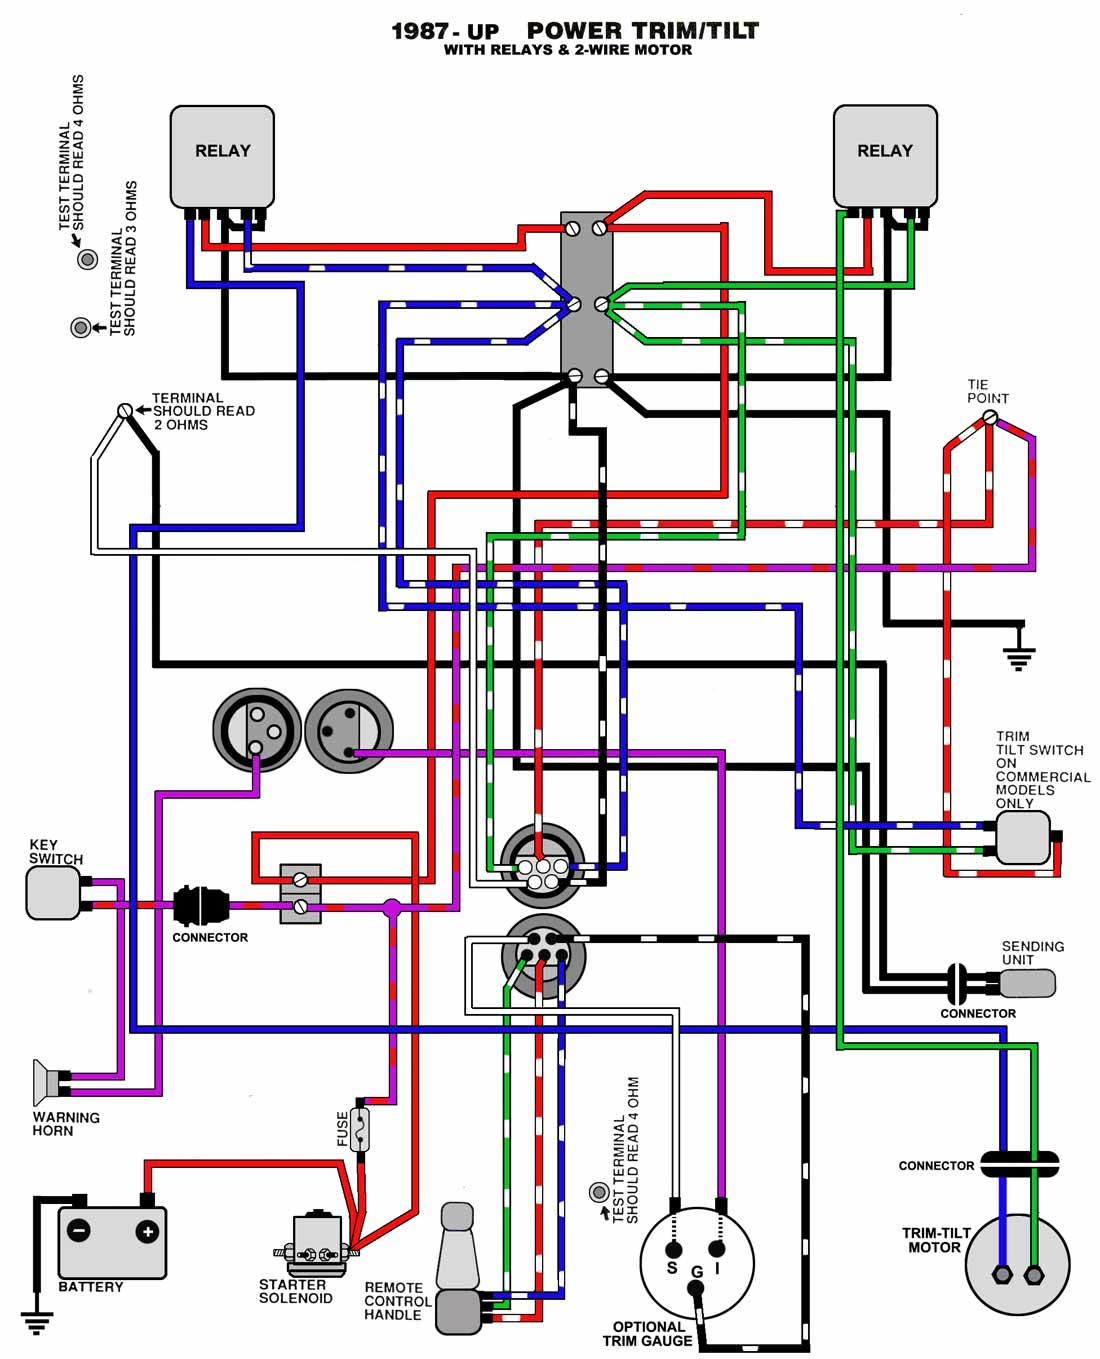 mastertech marine evinrude johnson outboard wiring diagrams 35 HP Mercury Outboard Wiring Diagram mercury control box wiring diagram 1995 mercury outboard 115 hp wiring diagram